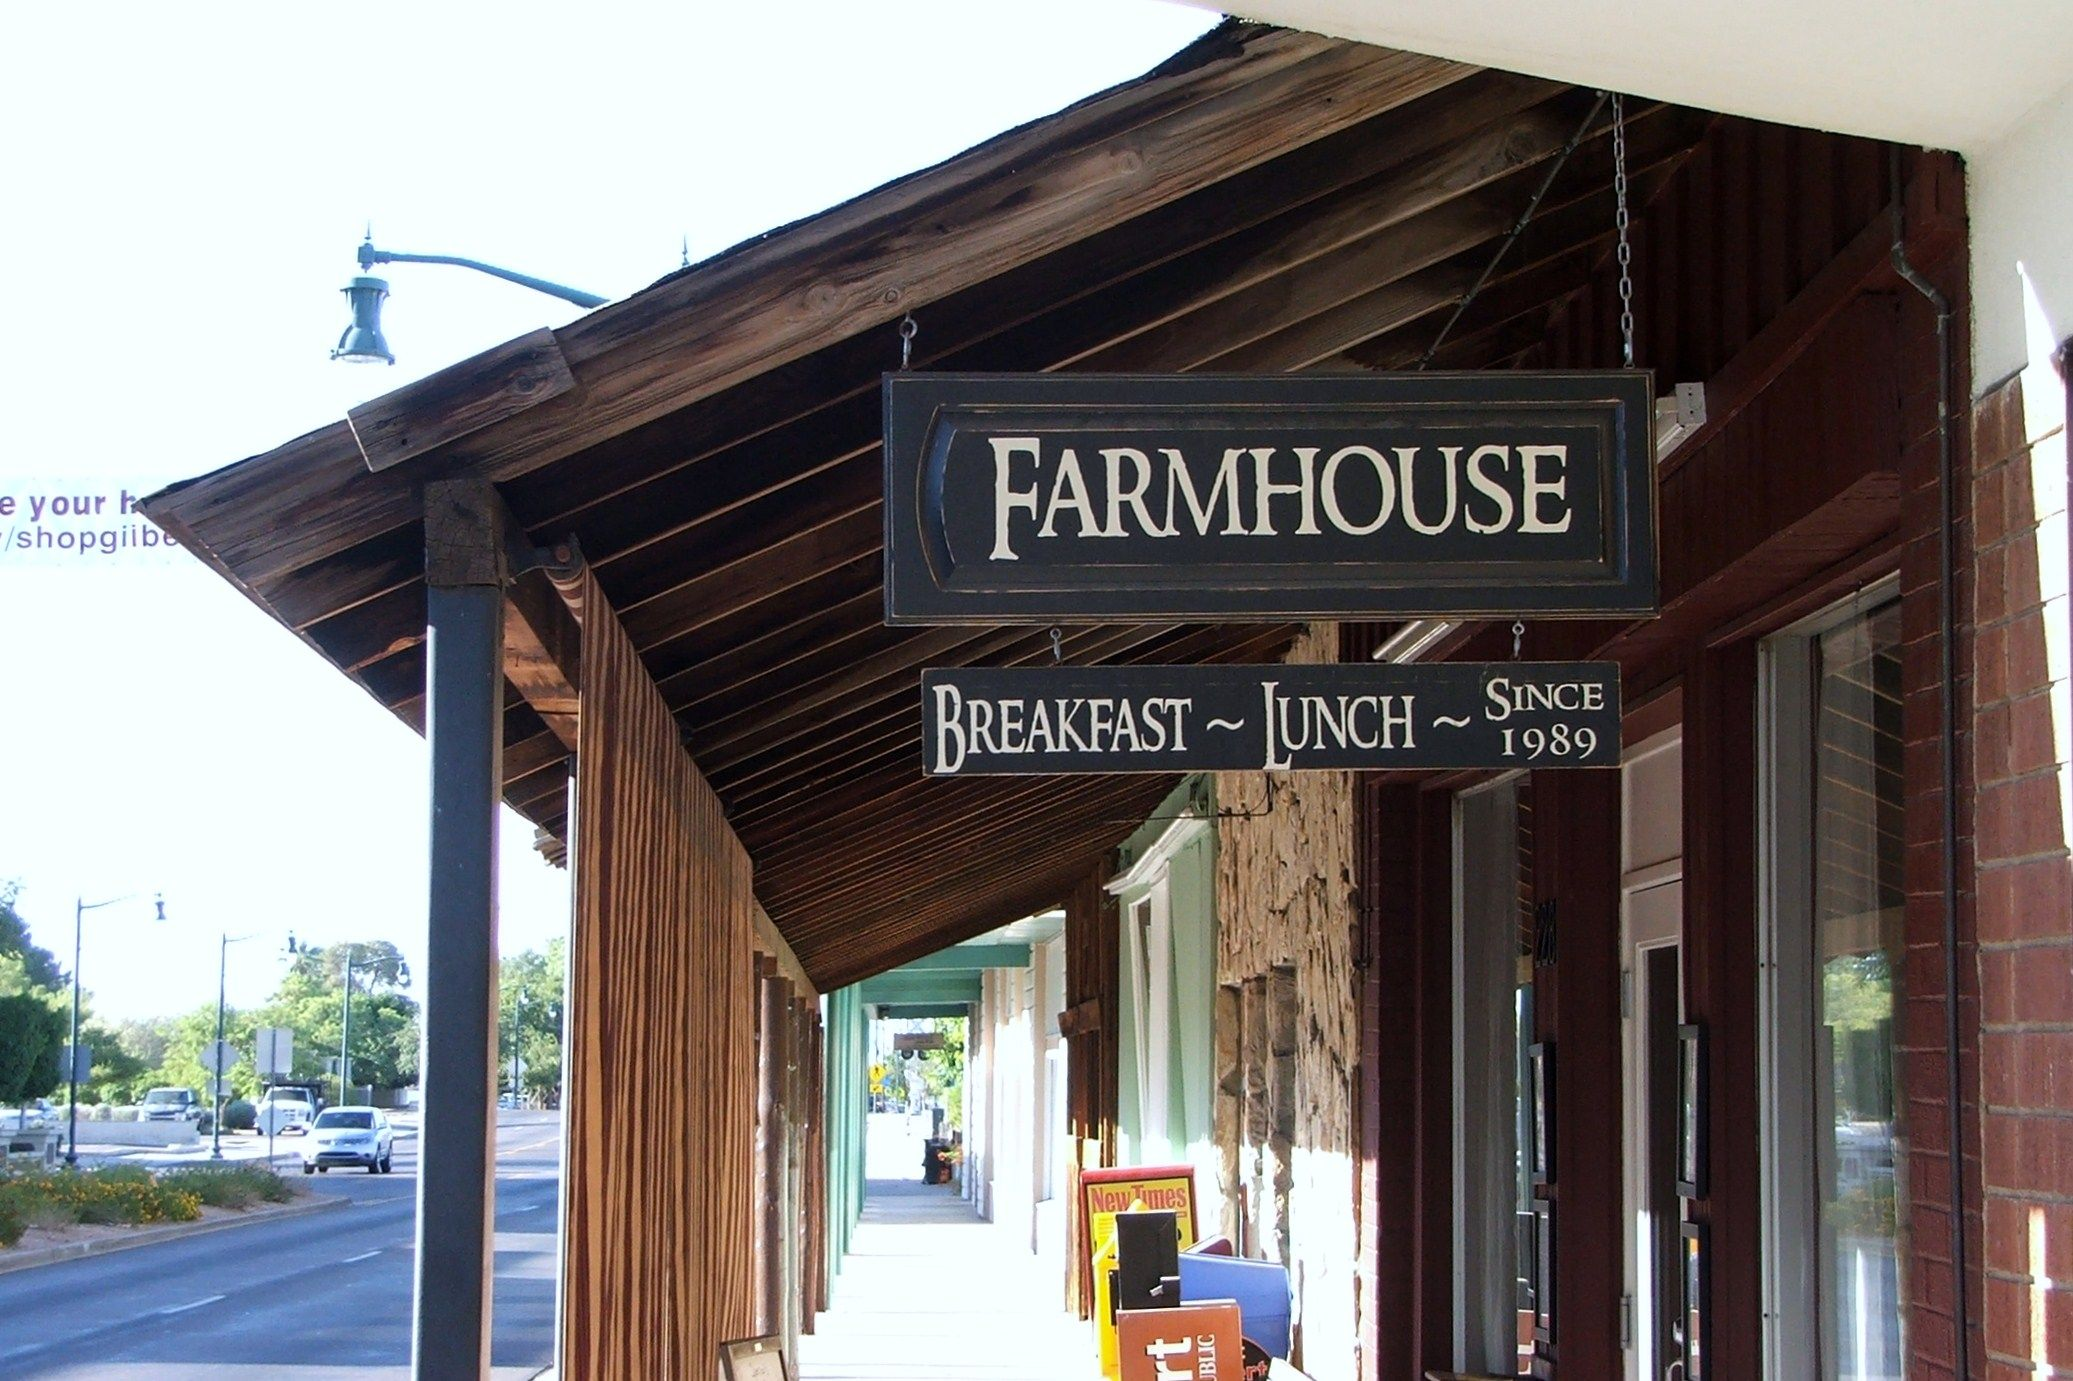 The Farmhouse Restaurant In Downtown Gilbert Serves Breakfast And Lunch